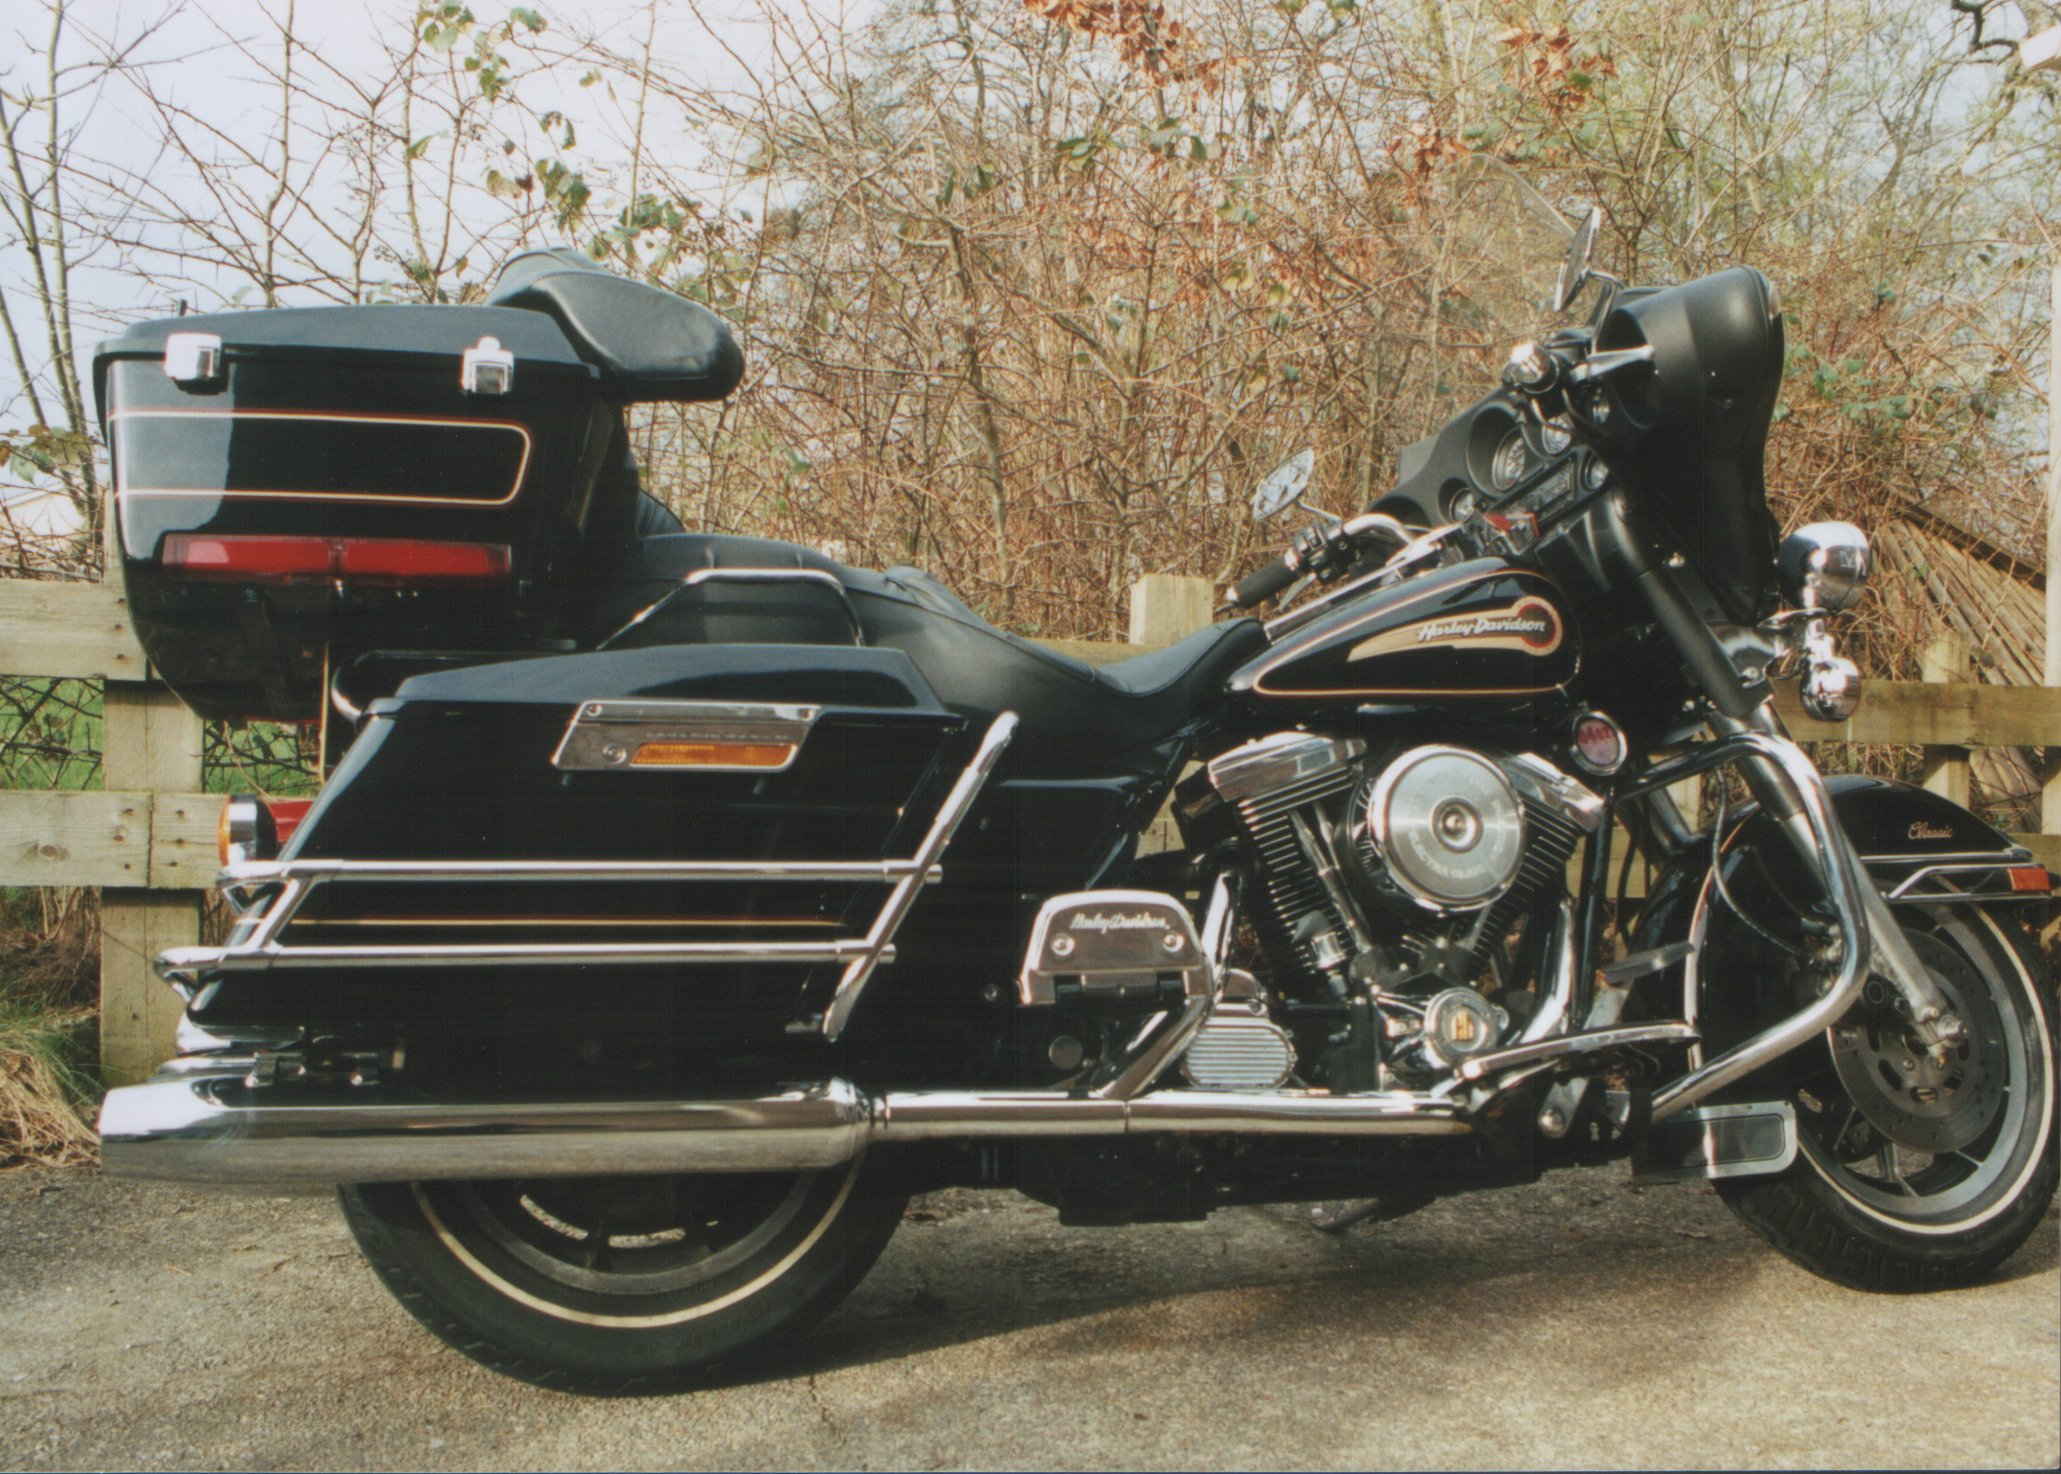 2007 Harley Davidson FLHTC Electra Glide Classic pics specs and